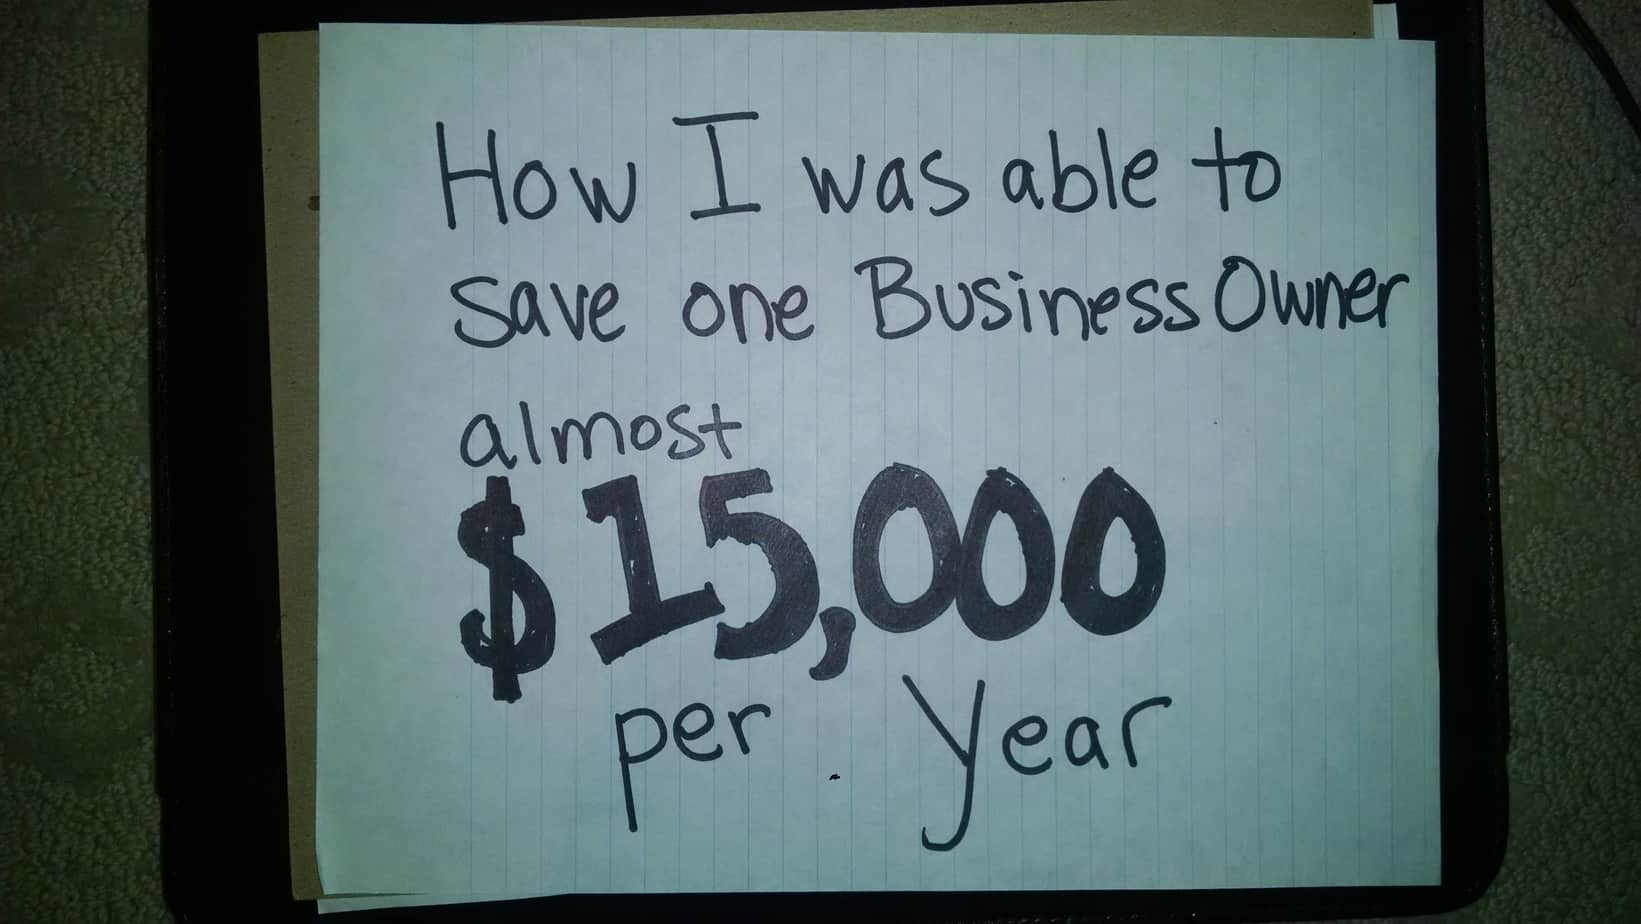 Save almost $15,000 per year by turning 65